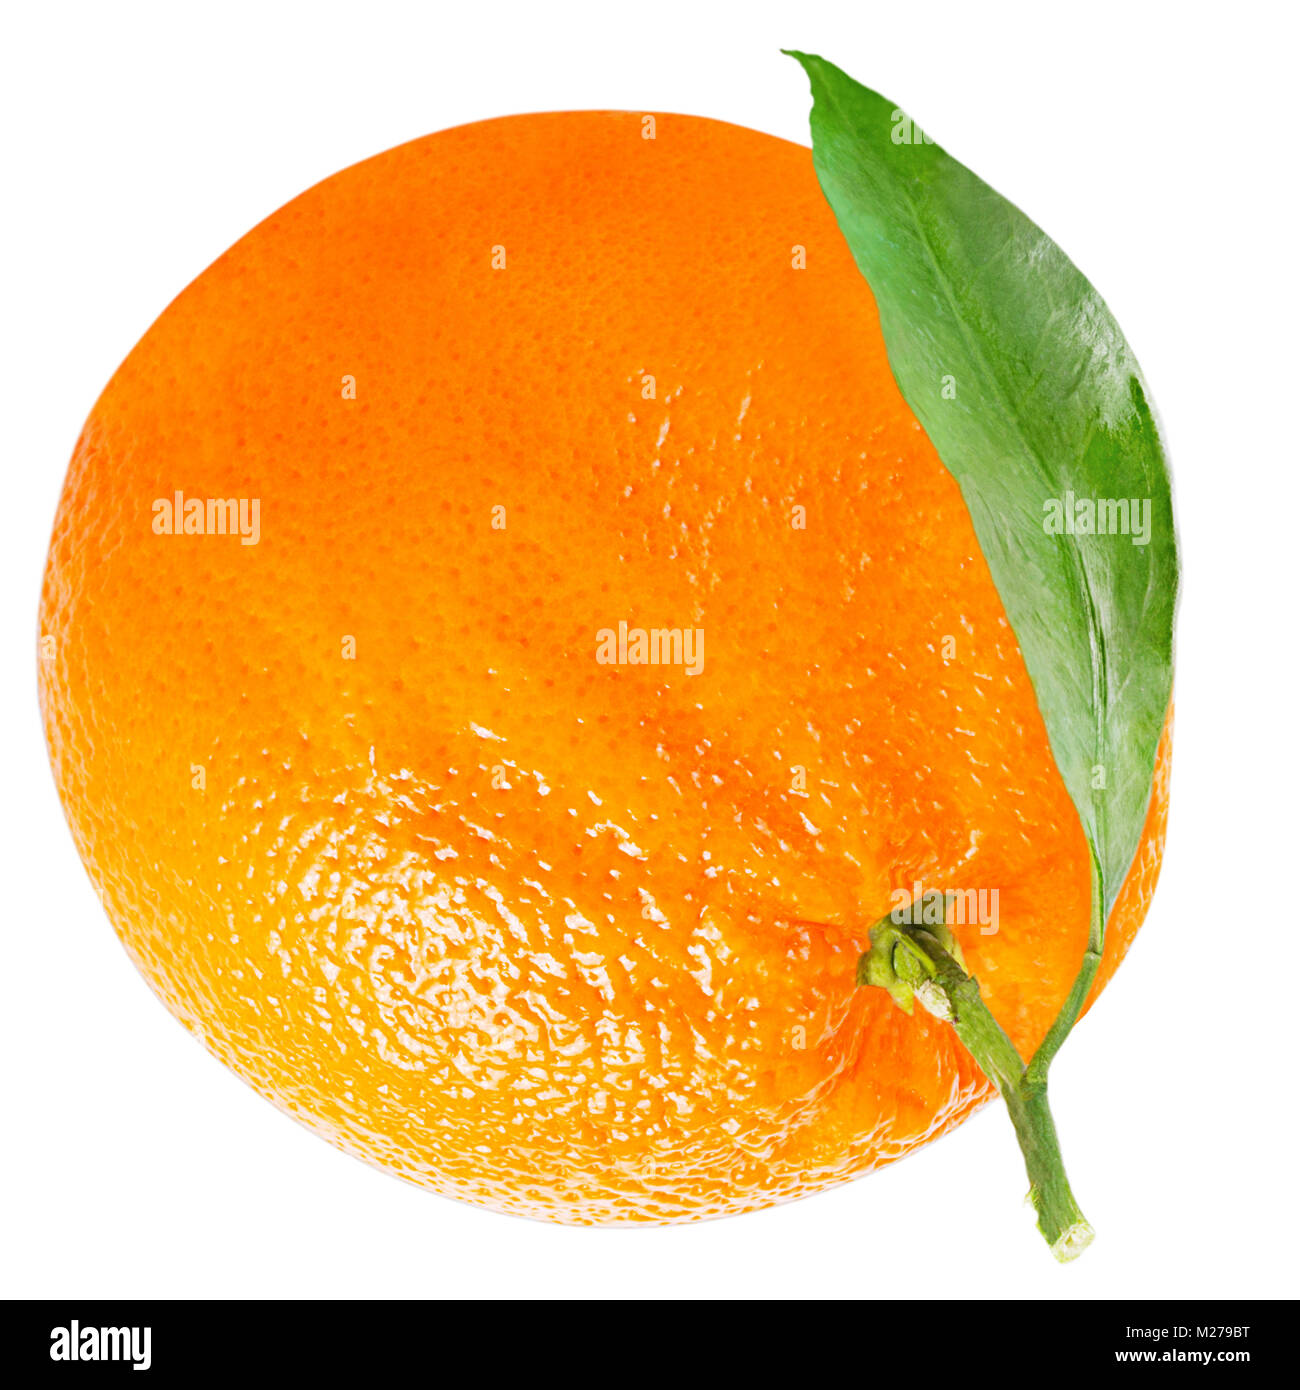 Isolated oranges. One orange with leaf isolated on white background with clipping path as packaging design element. - Stock Image